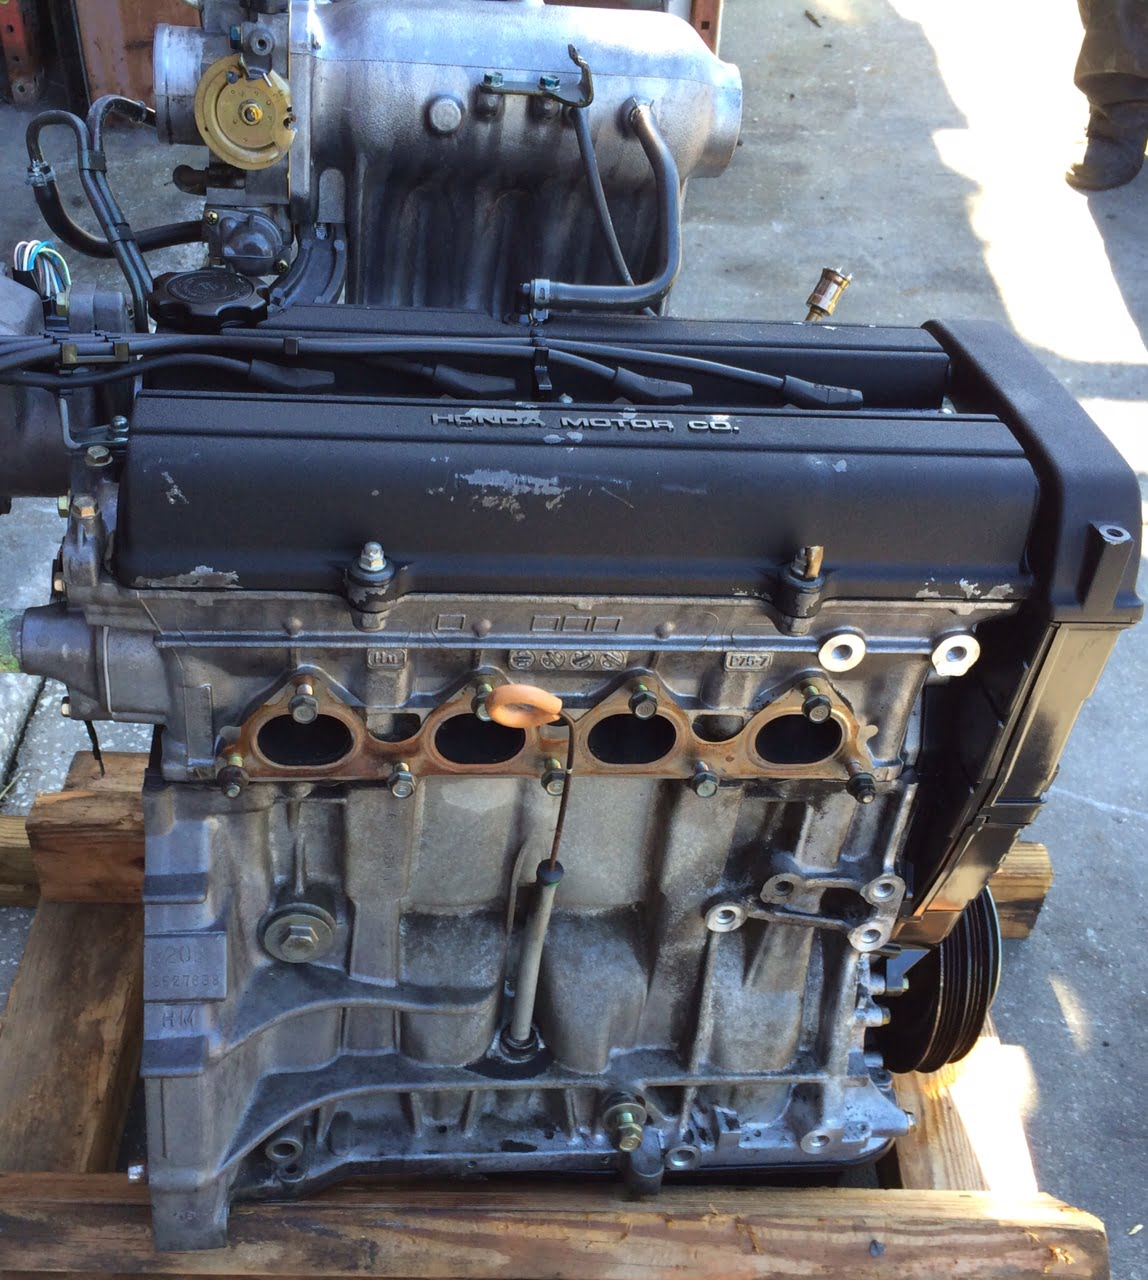 Acura Integra Engine Base Model 2.0L DOHC Non V-Tec 1994